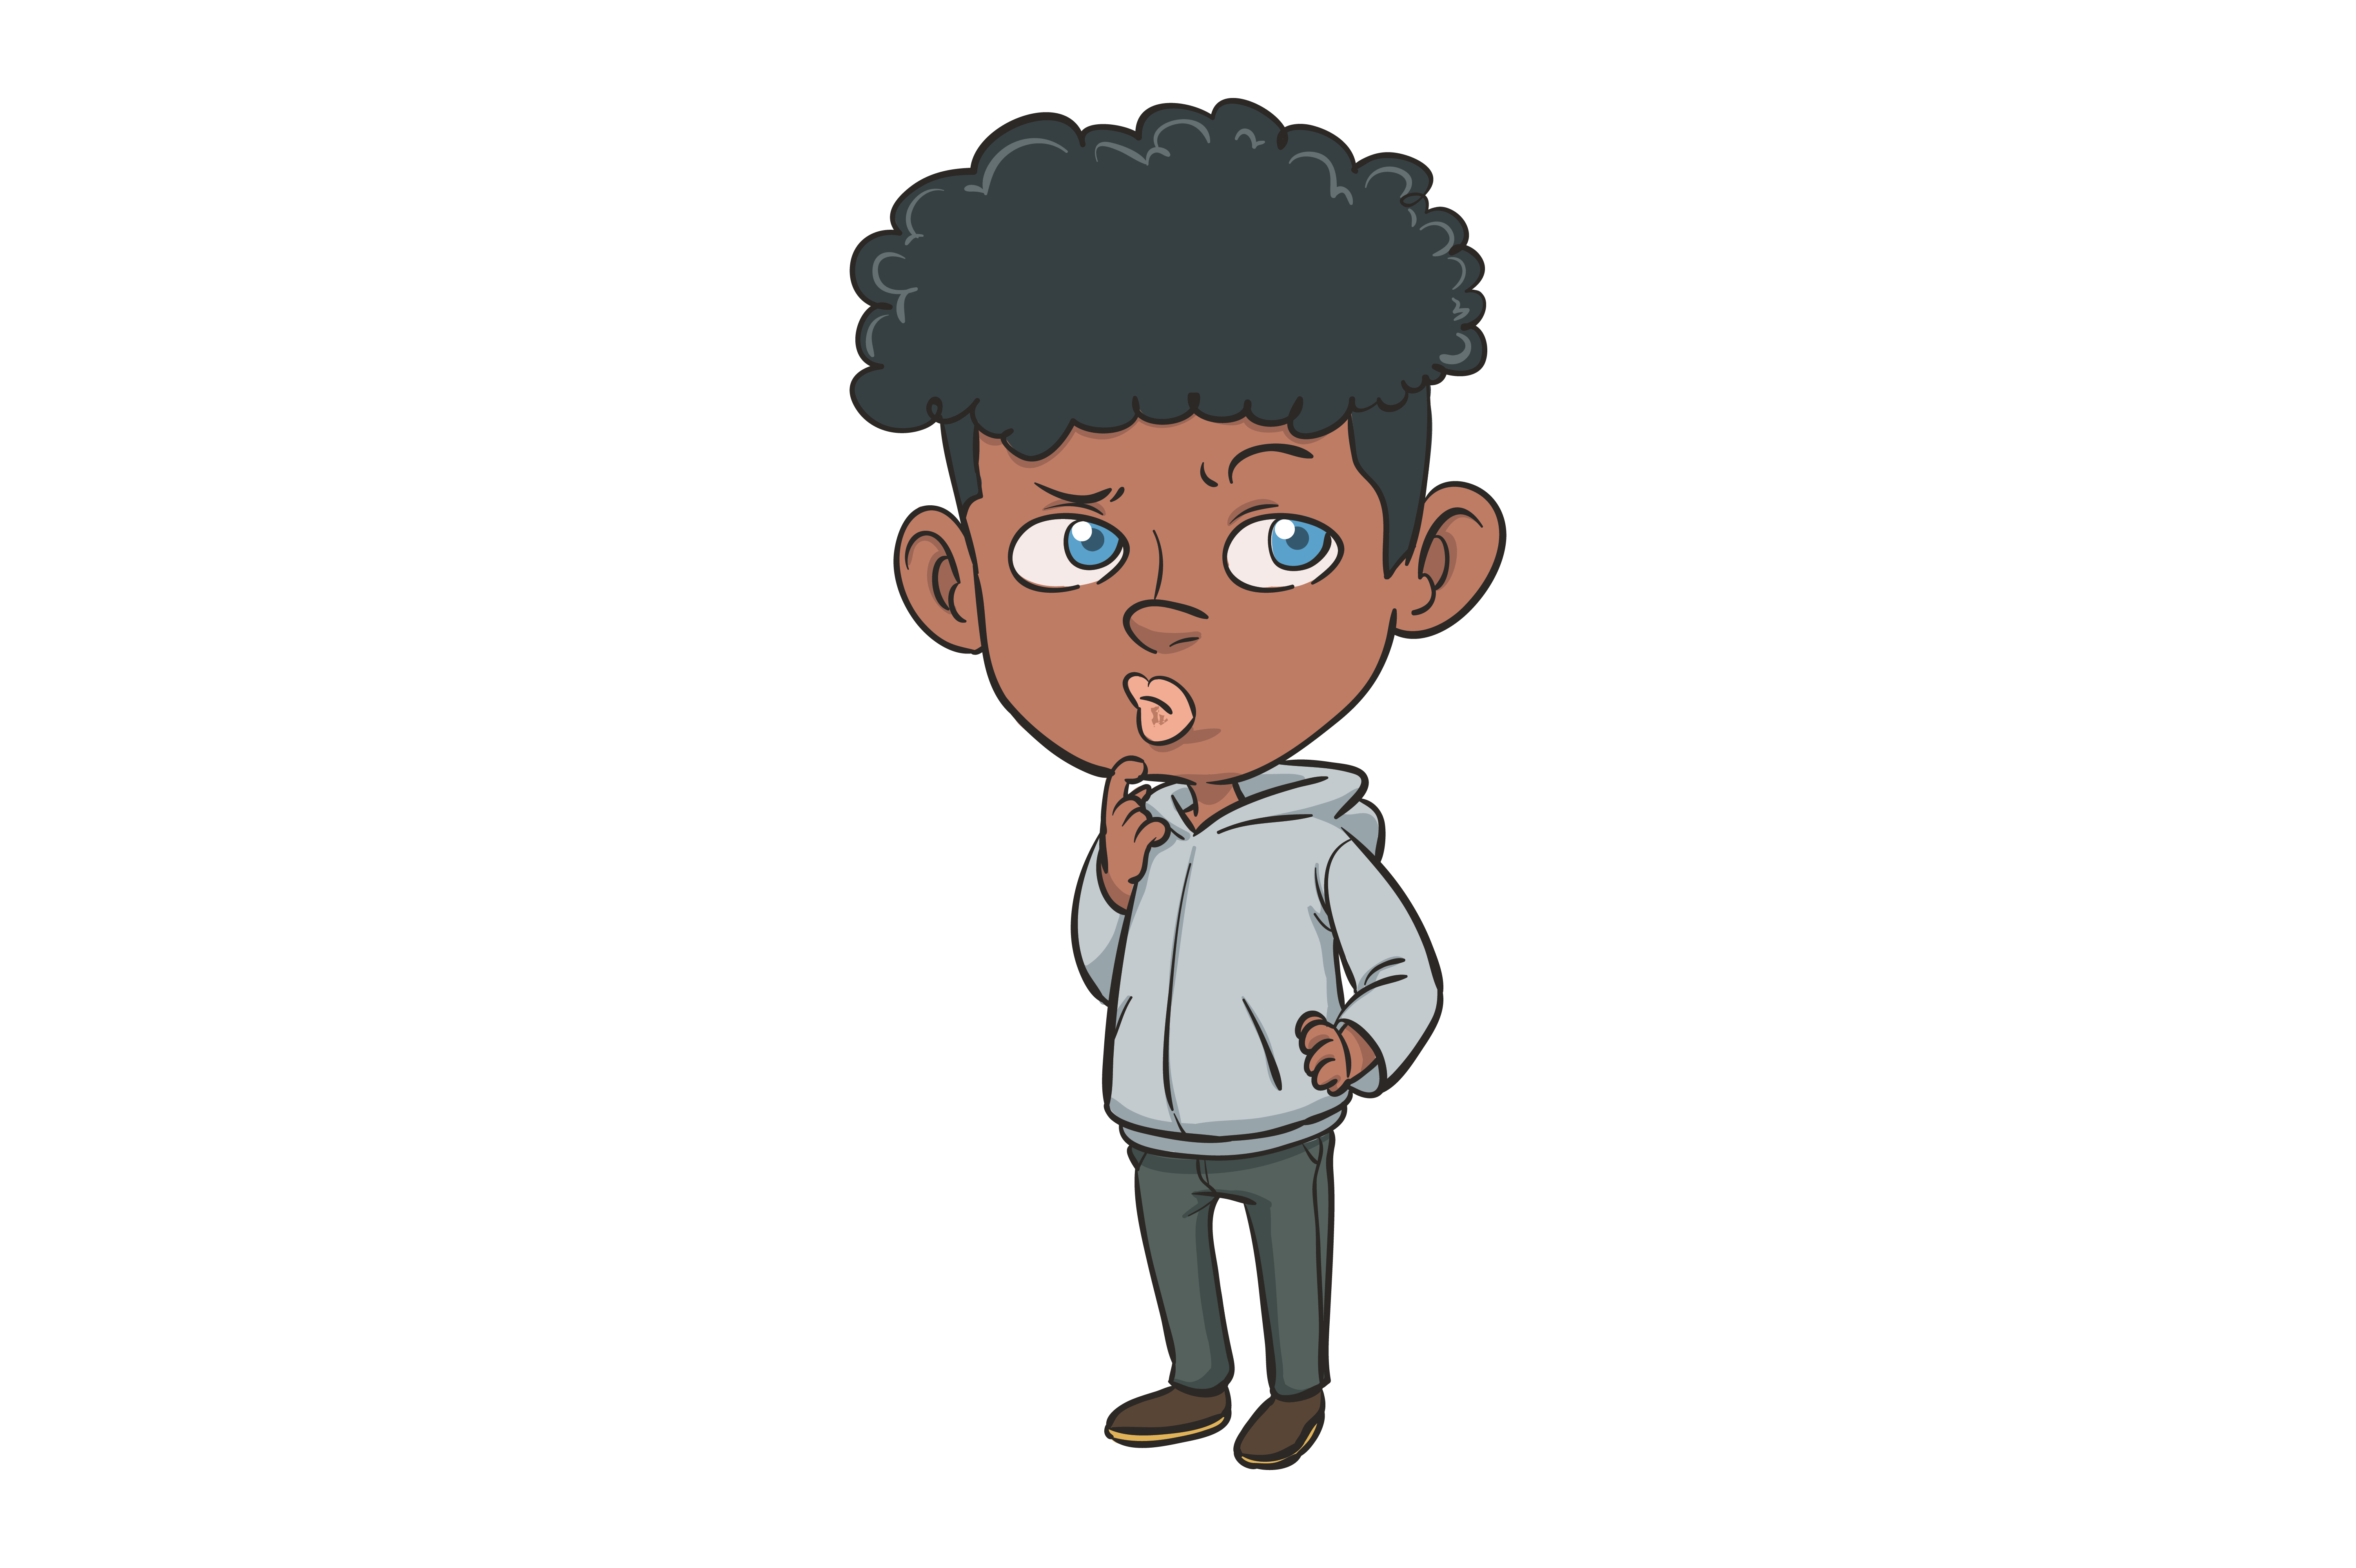 Character Illustration Of A Curly Haired Boy Graphic By Donovan